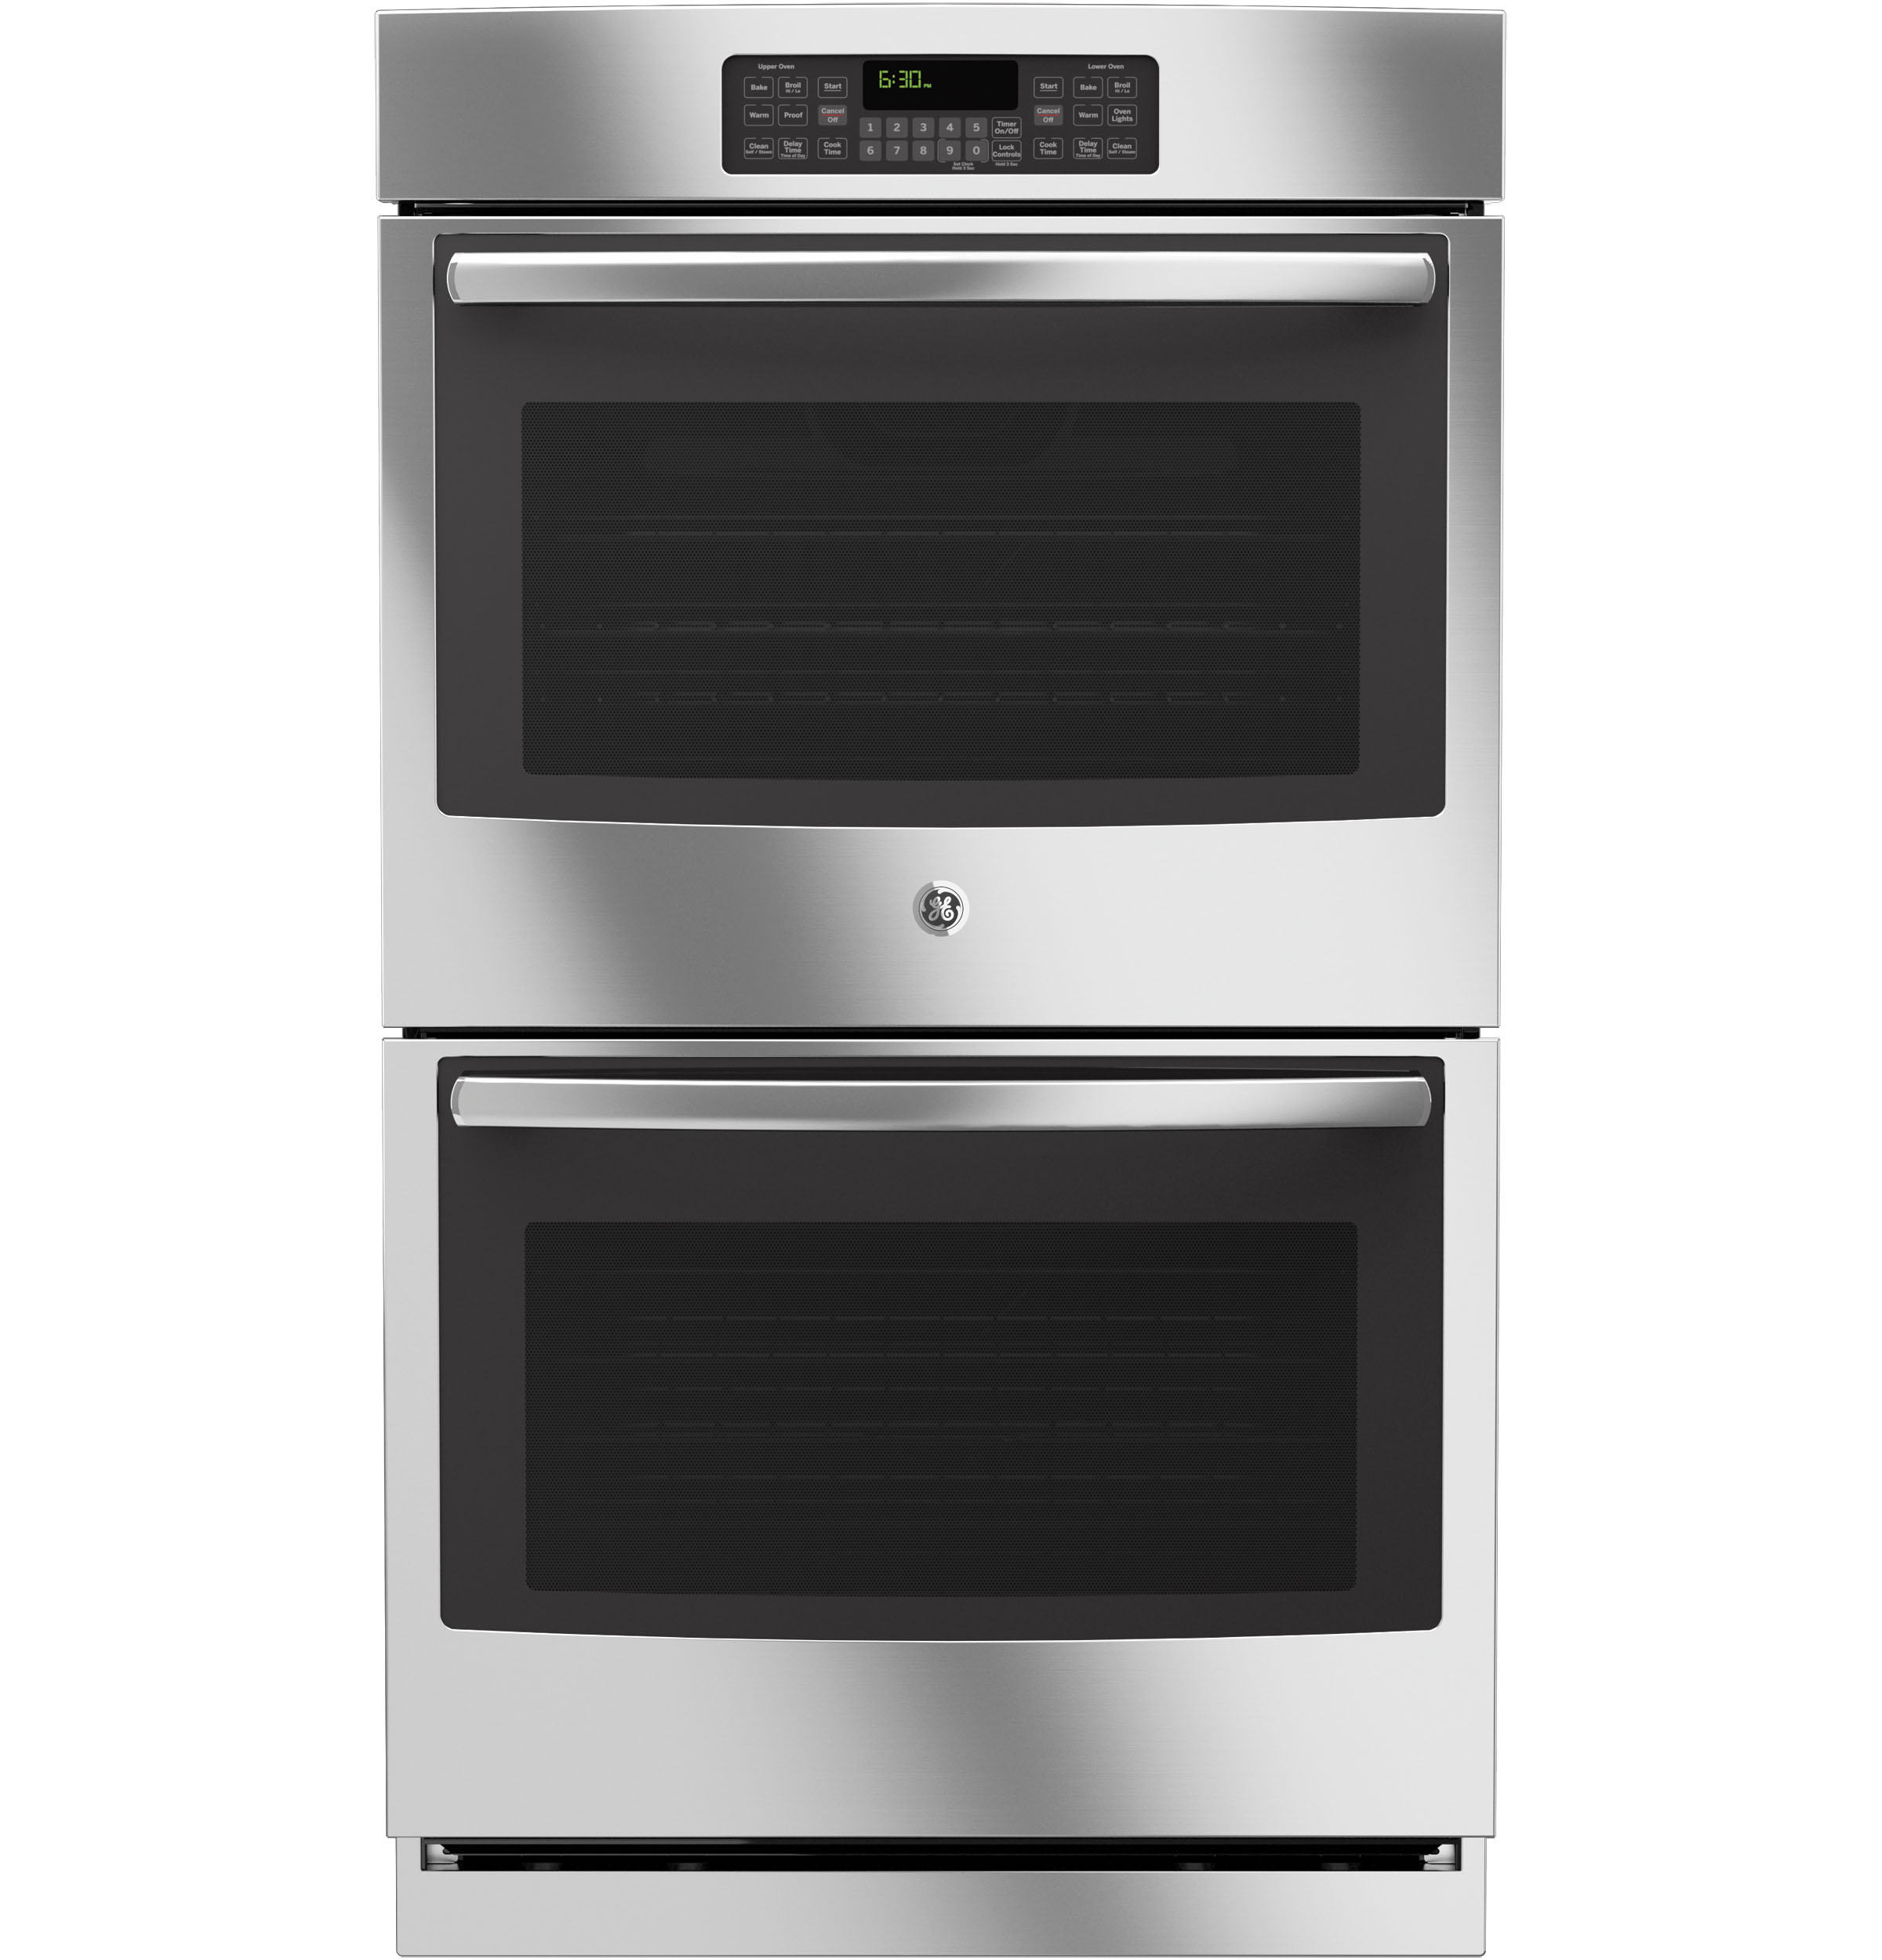 Jt3500sfss Ge 30 Built In Double Wall Oven Ge Appliances